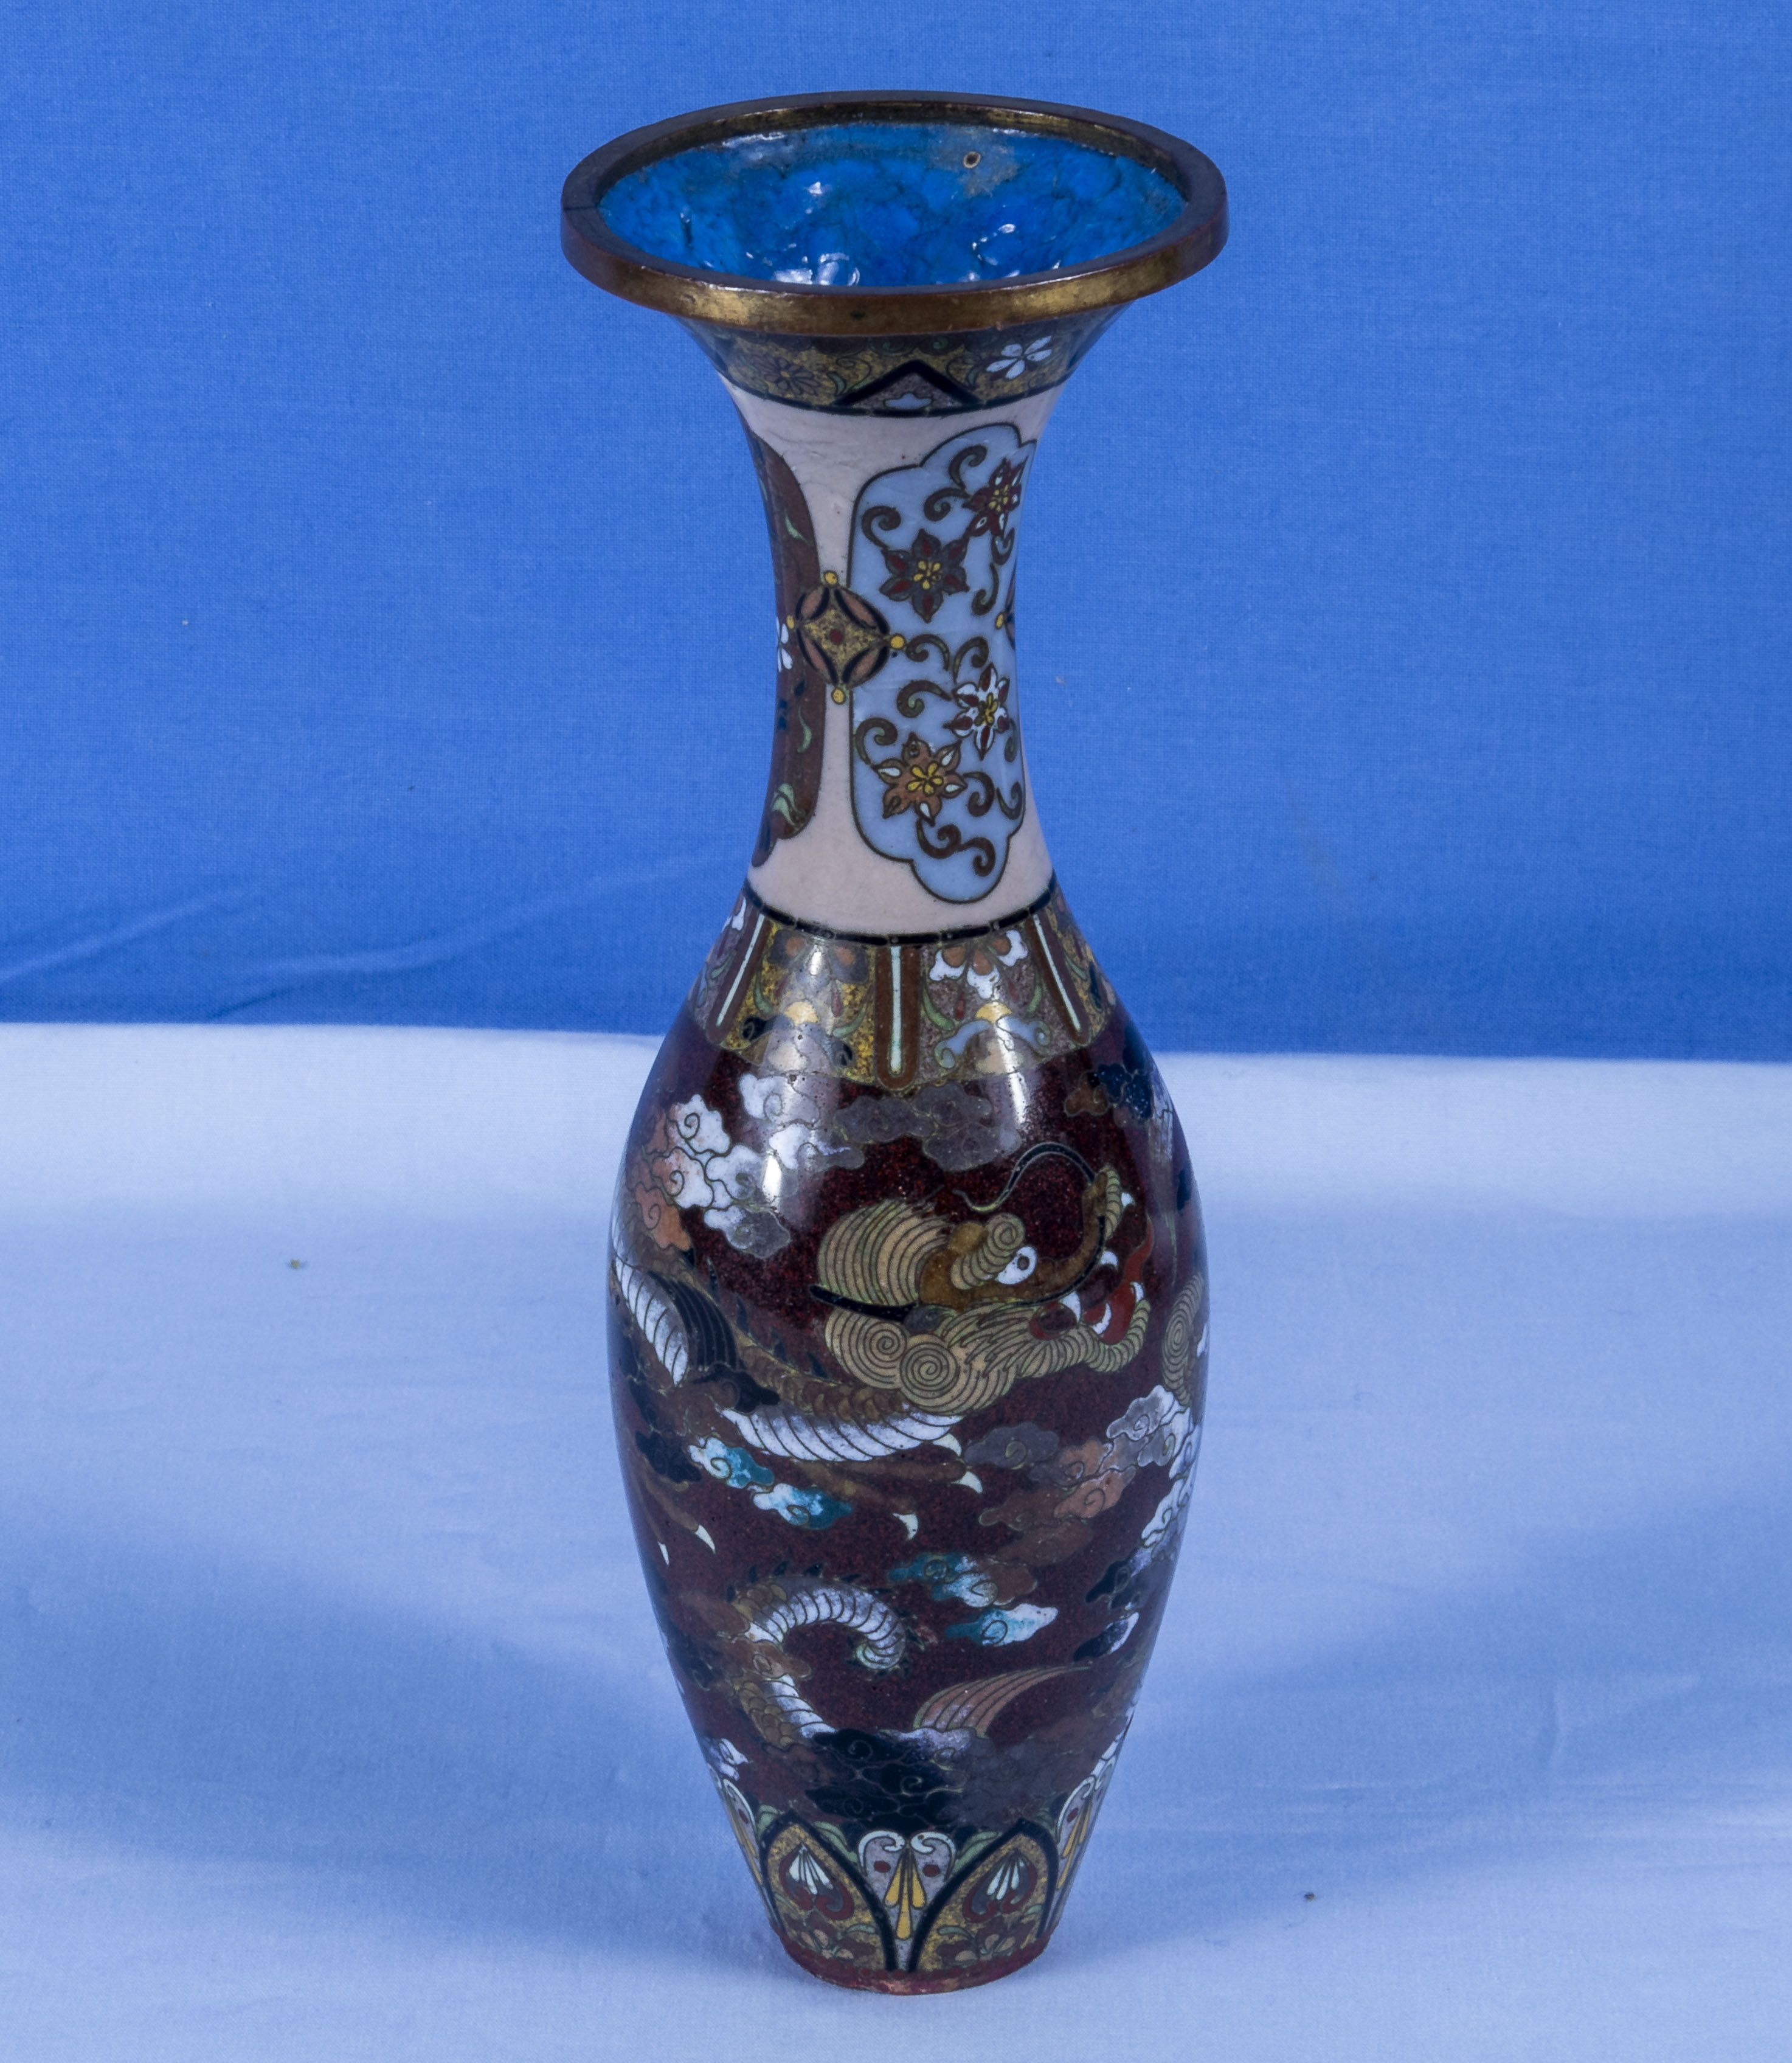 A fine quality Japanese miniature cloisonne vase decorated with dragons